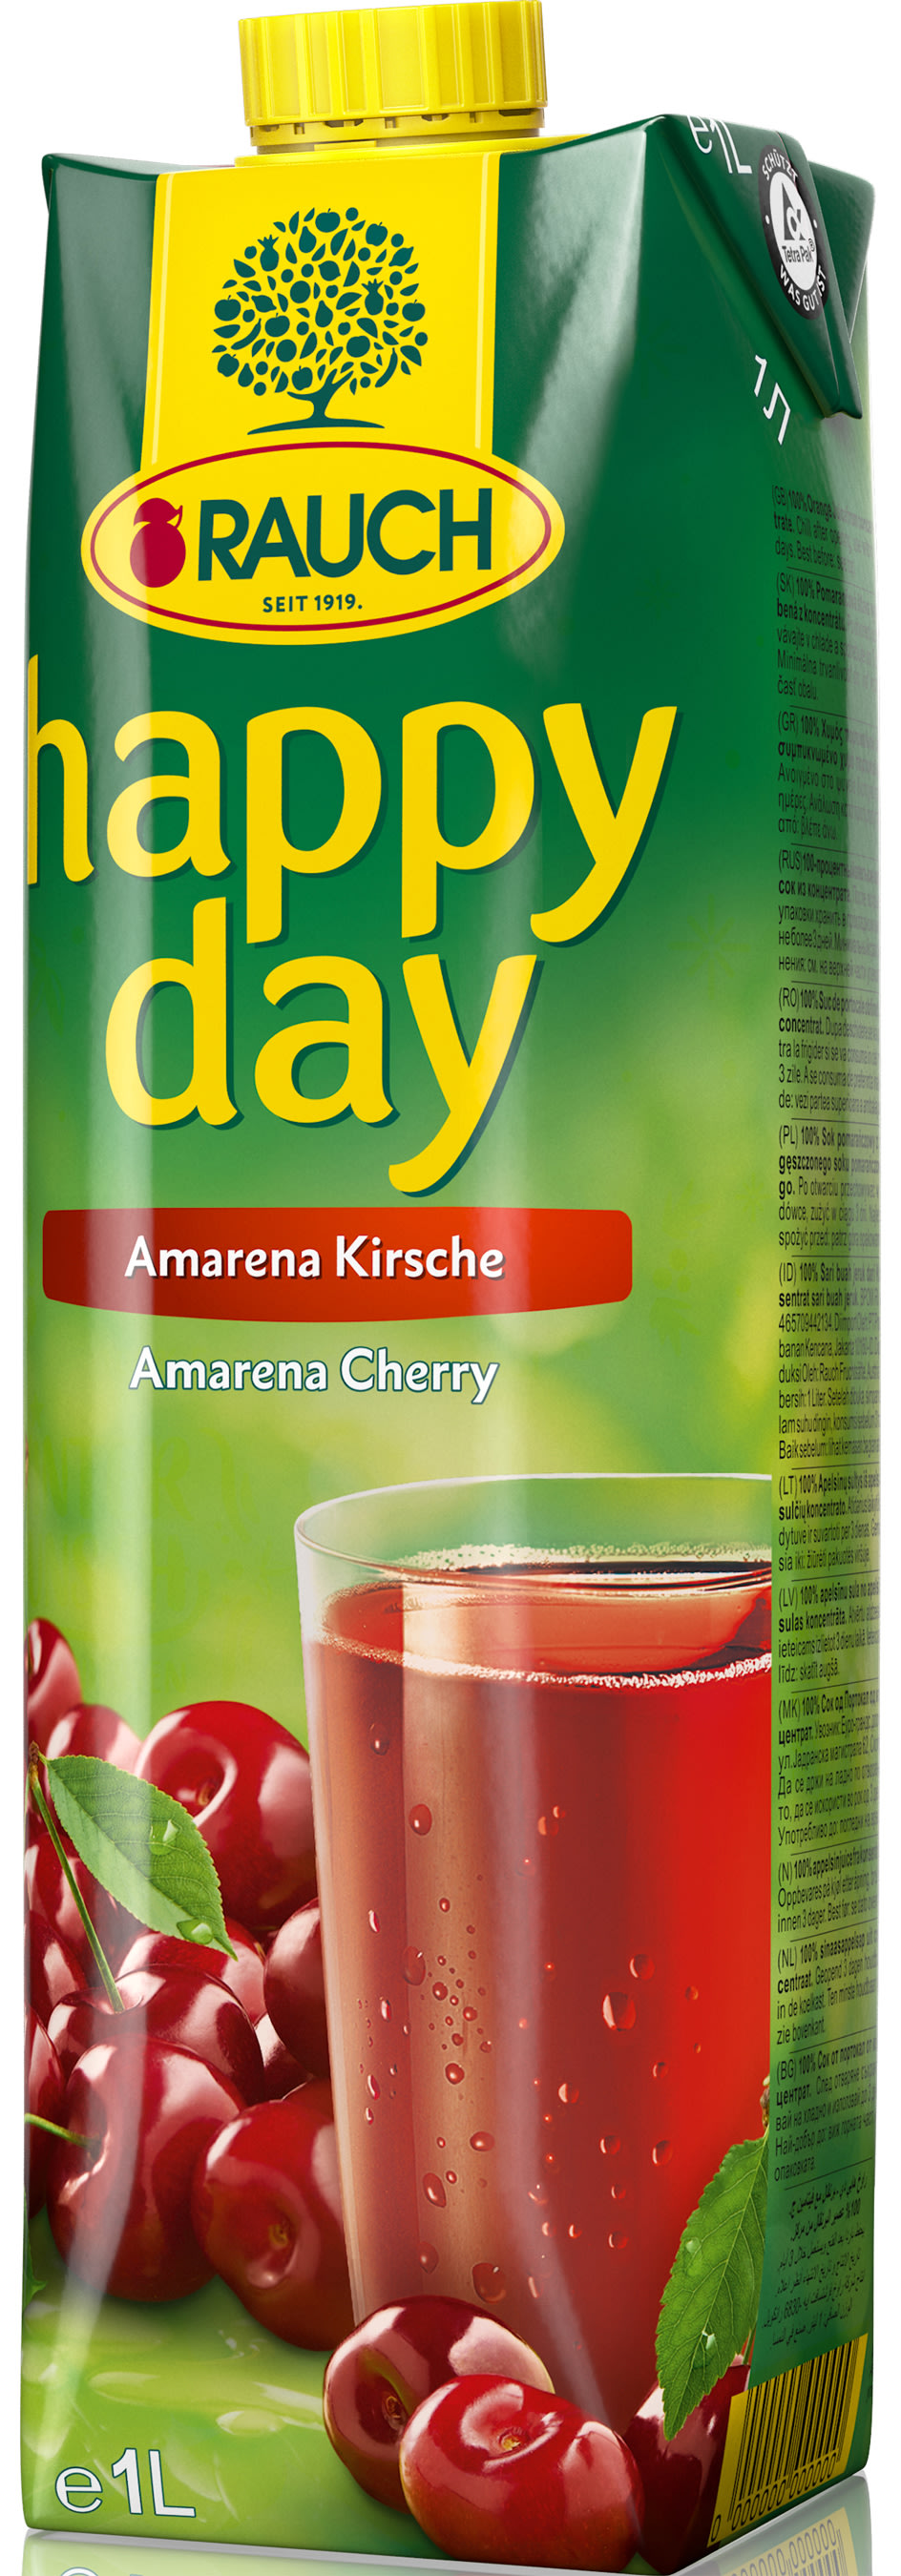 Happy Day Amarena Kirsche 1 l Tetra-Pack